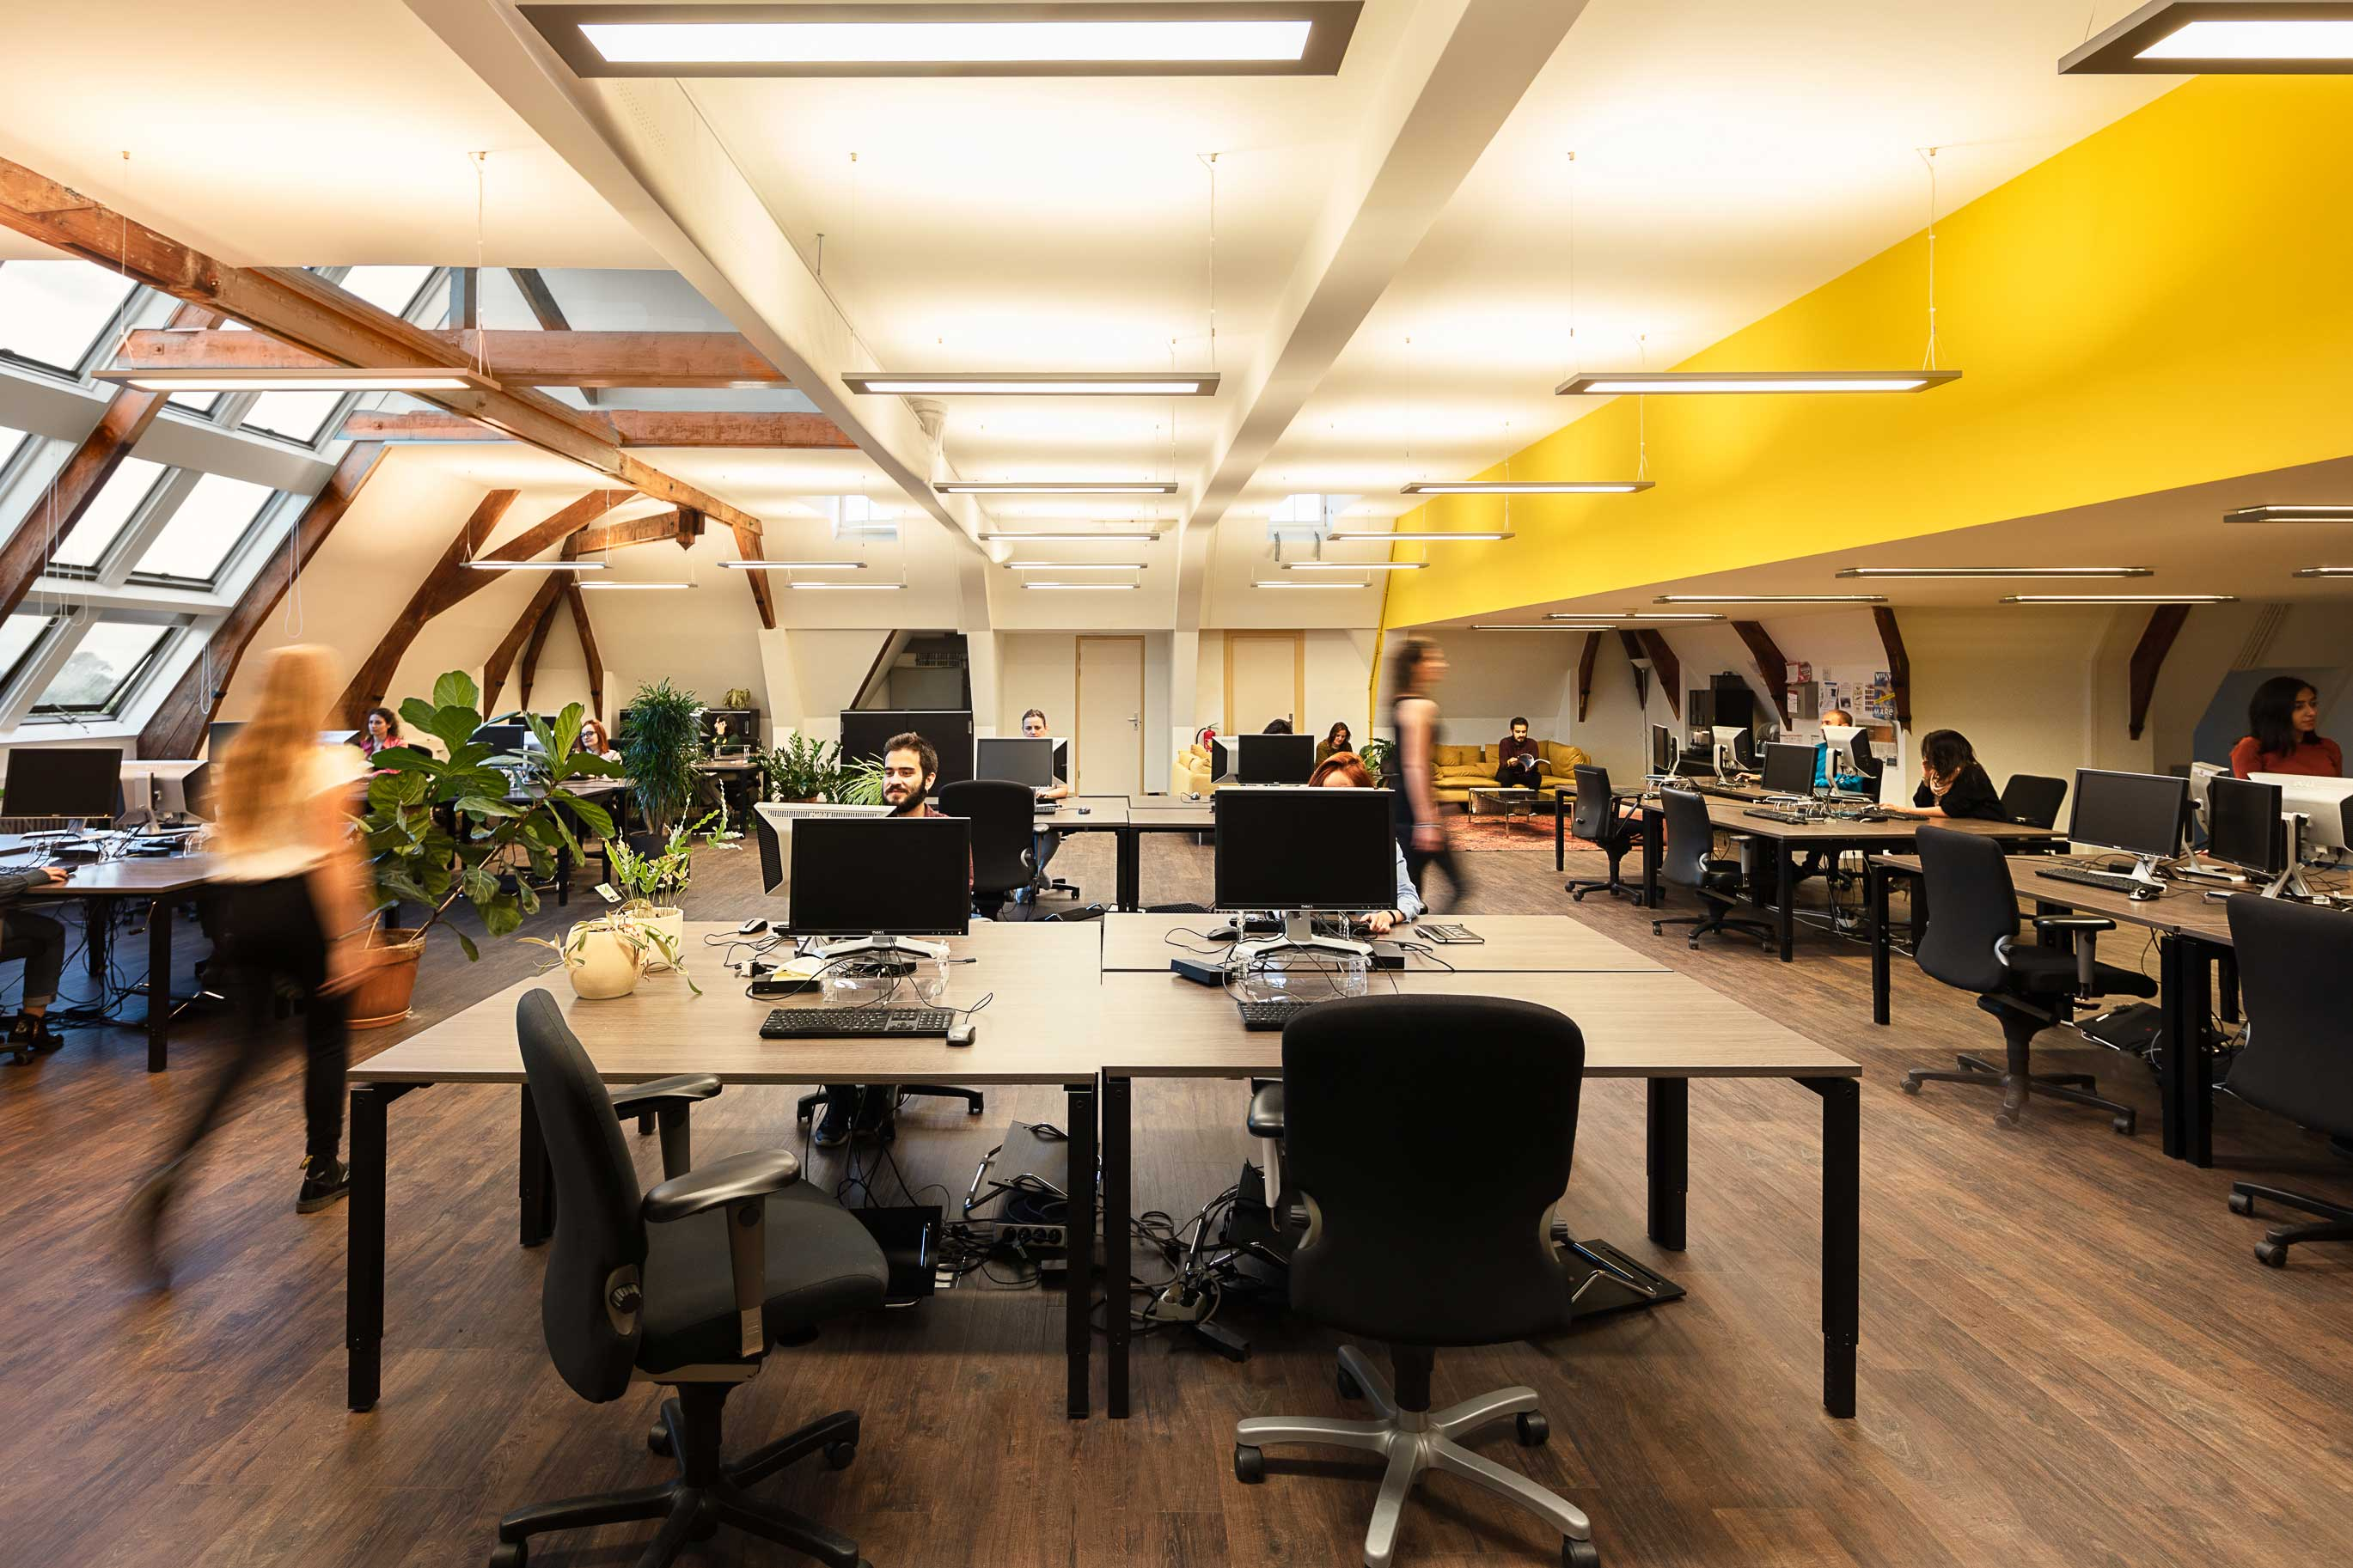 Akka architects, architecture and design studio in Amsterdam leading by Stephanie Akkaoui Hughes